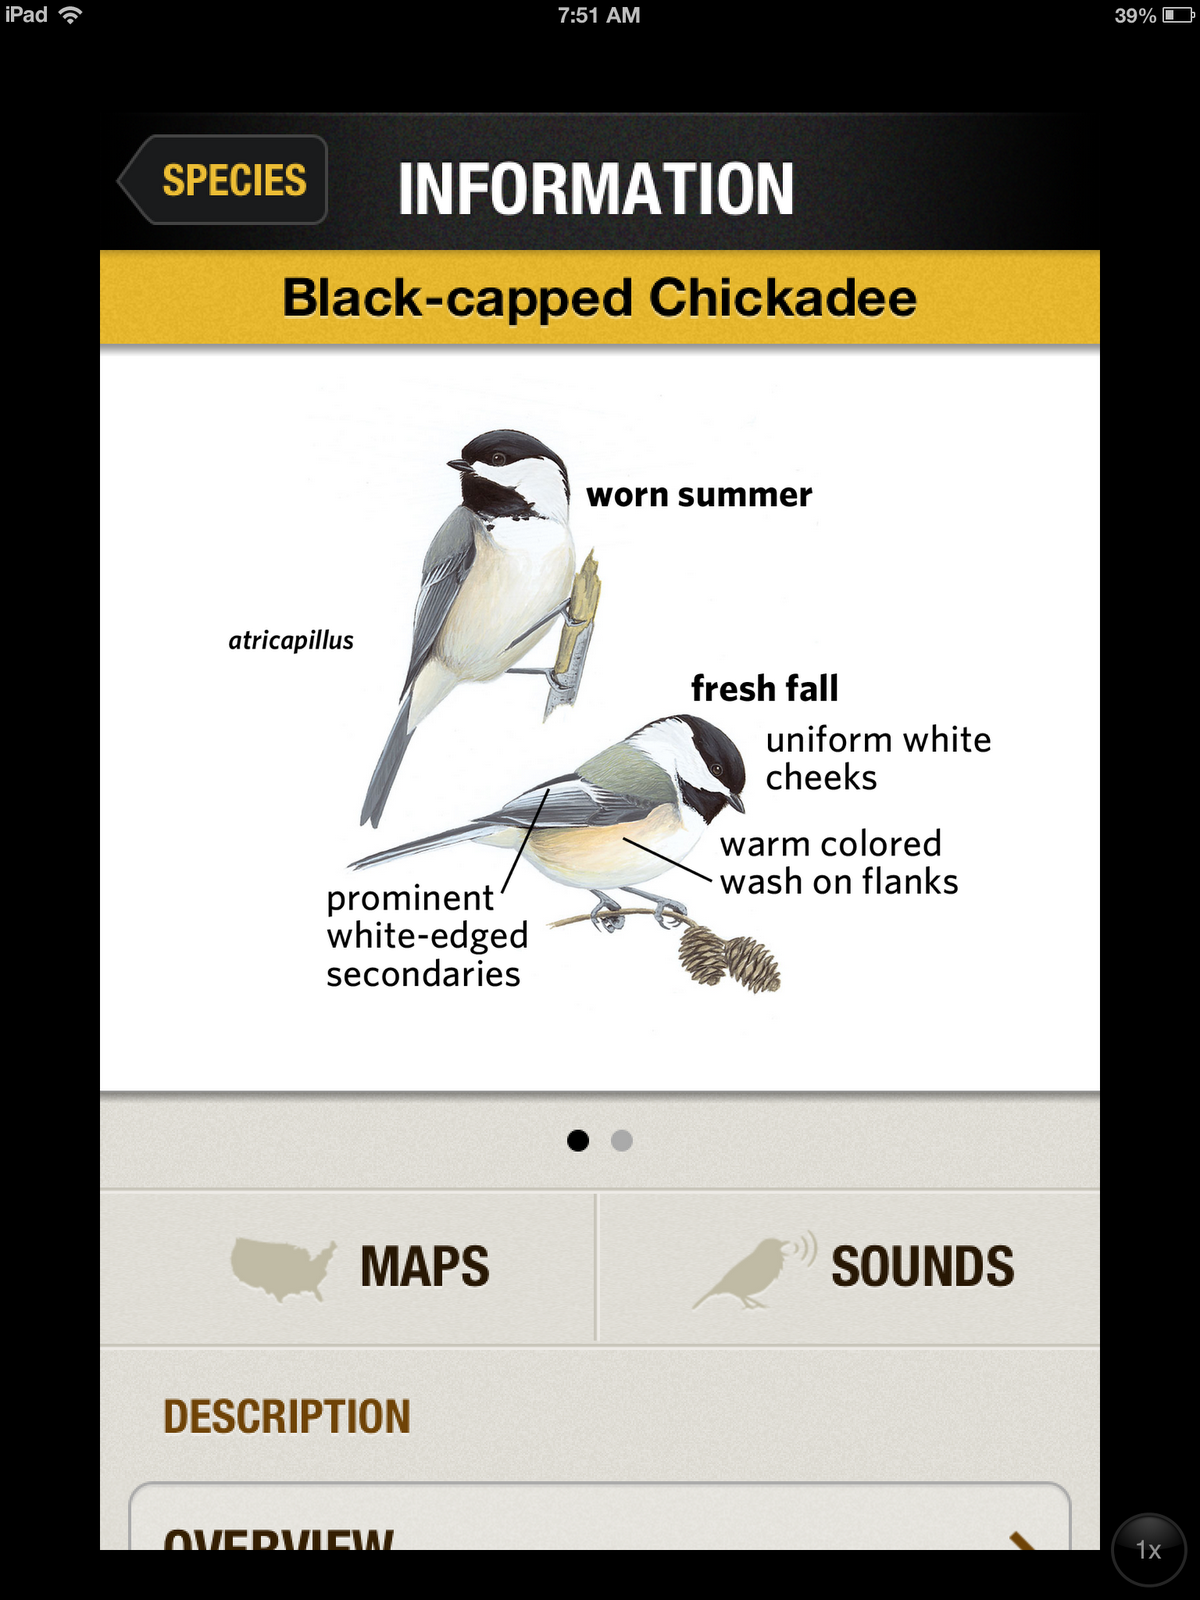 laura u0027s birding blog reviewing the new national geographic app